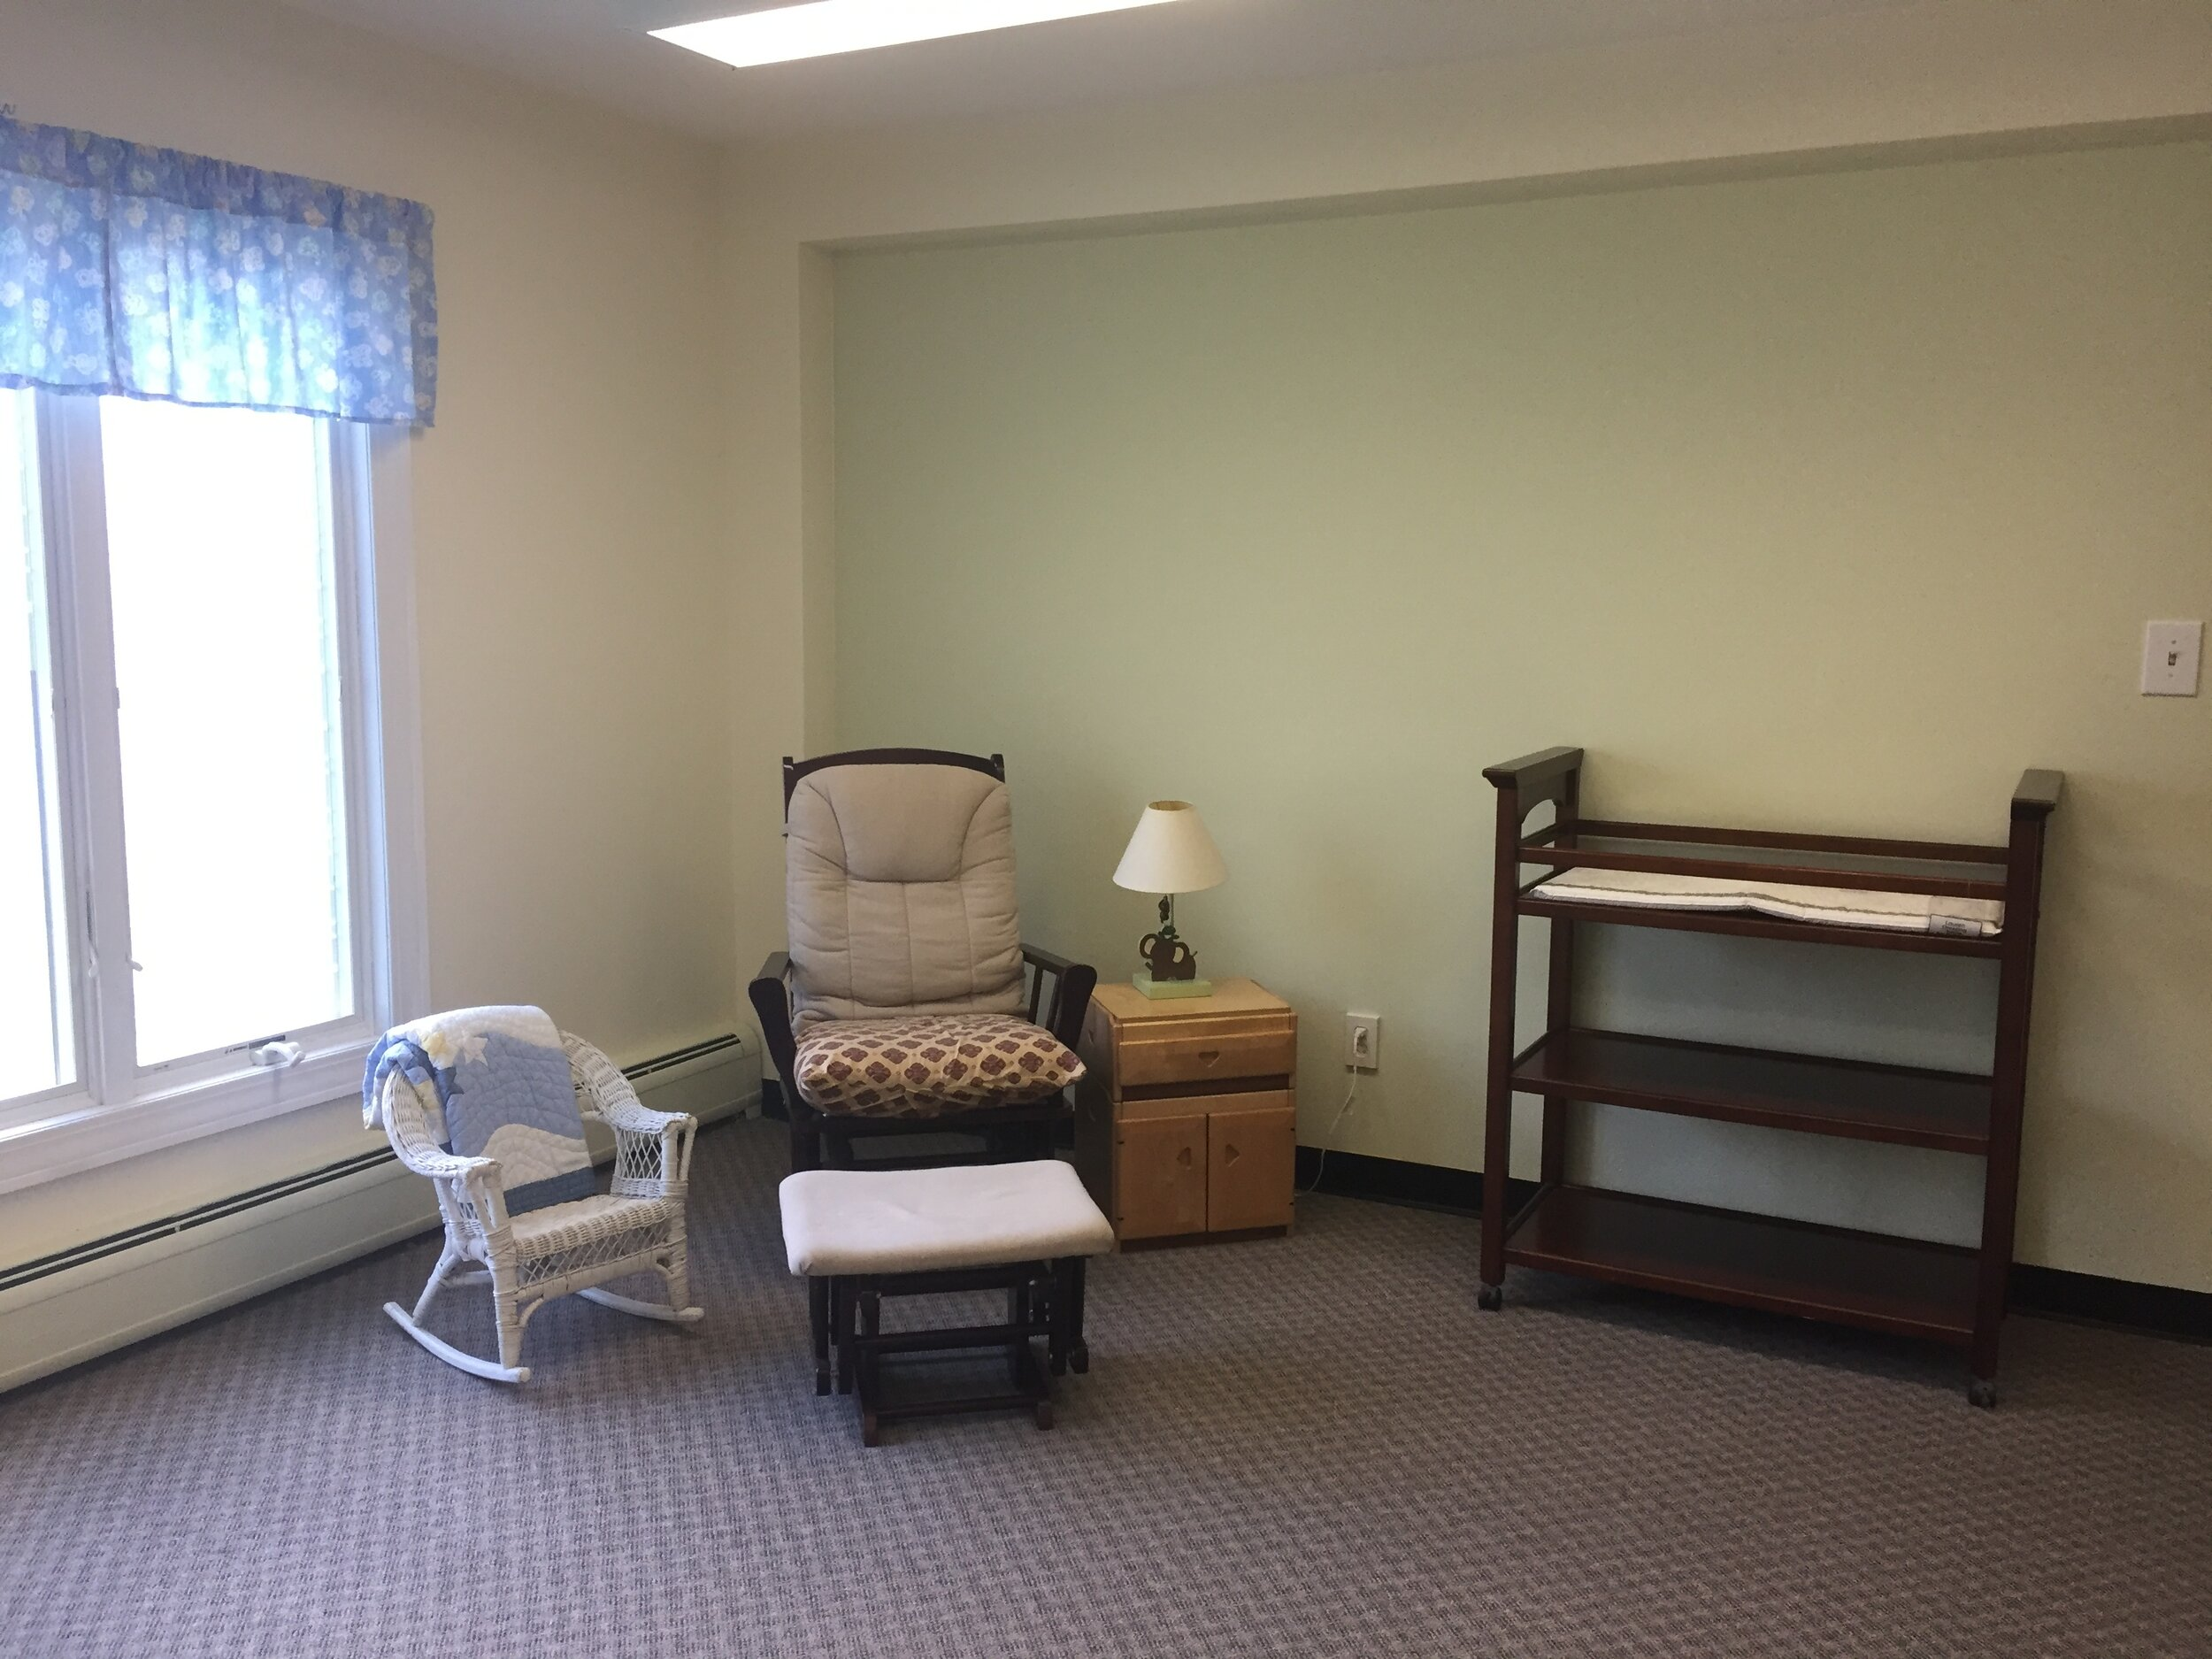 The nursery room is off of the Common Room.